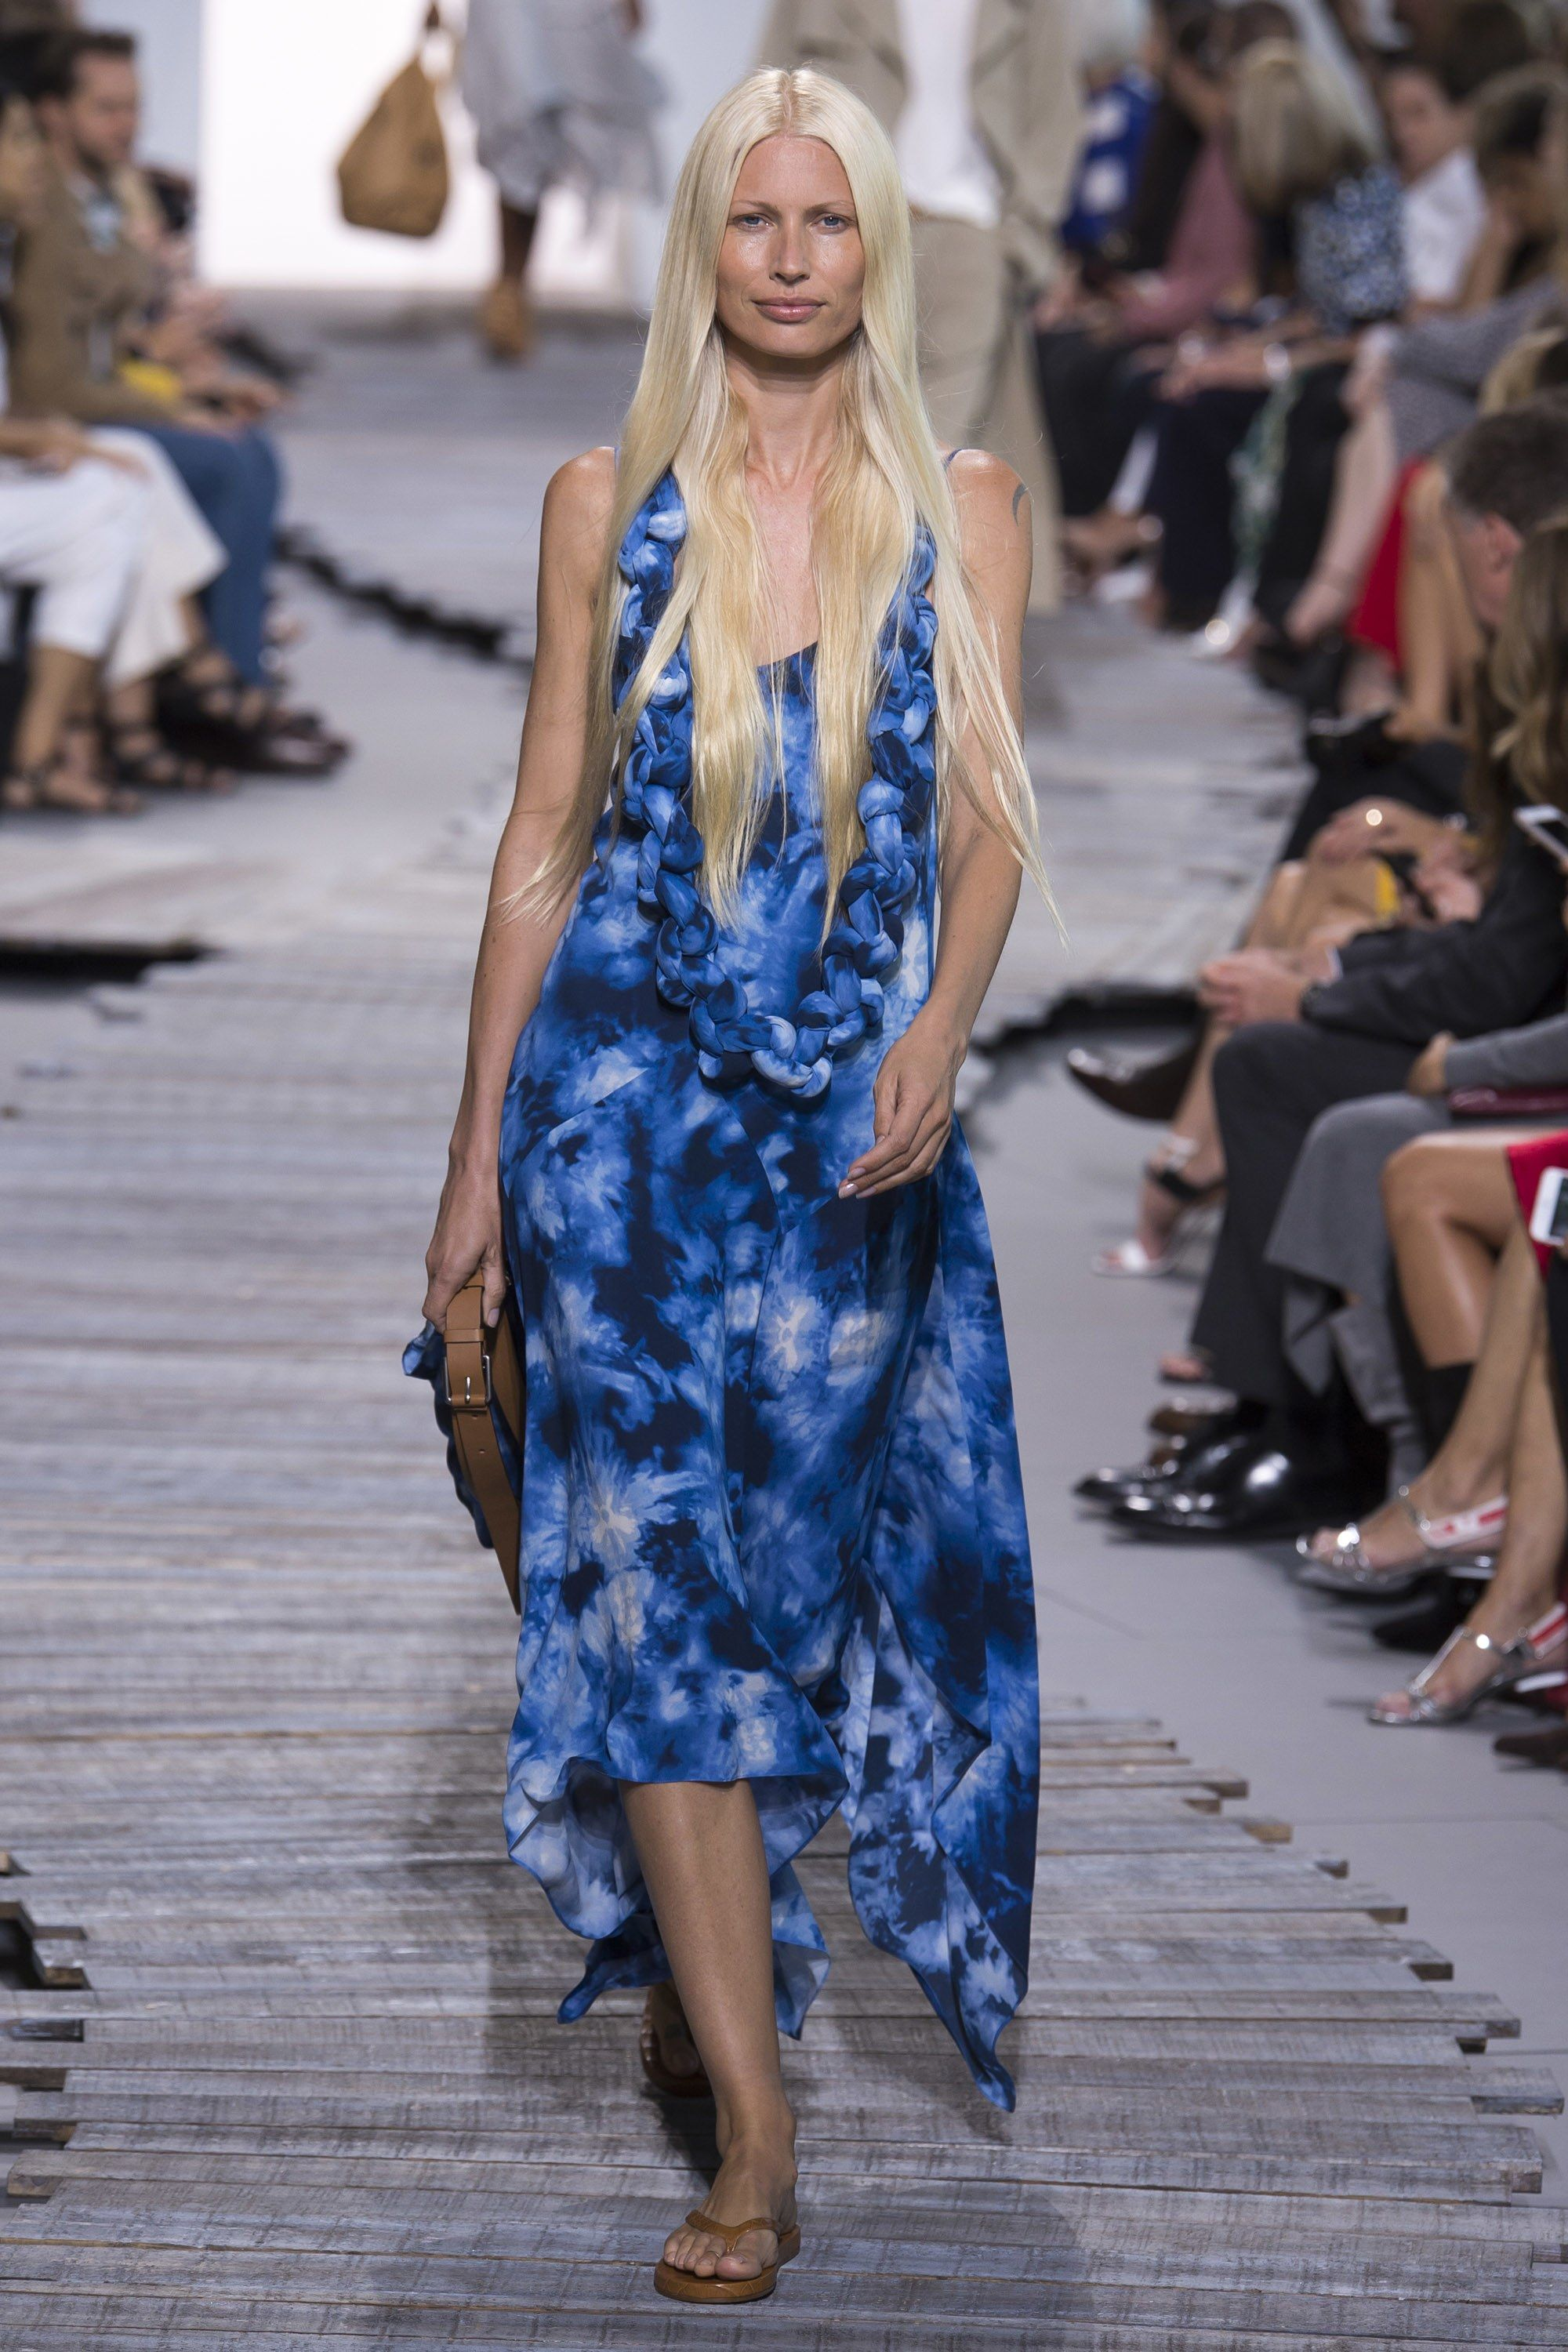 d87b5656bb5aa Michael Kors Collection Spring 2018 Ready-to-Wear Fashion Show - Kirsty Hume